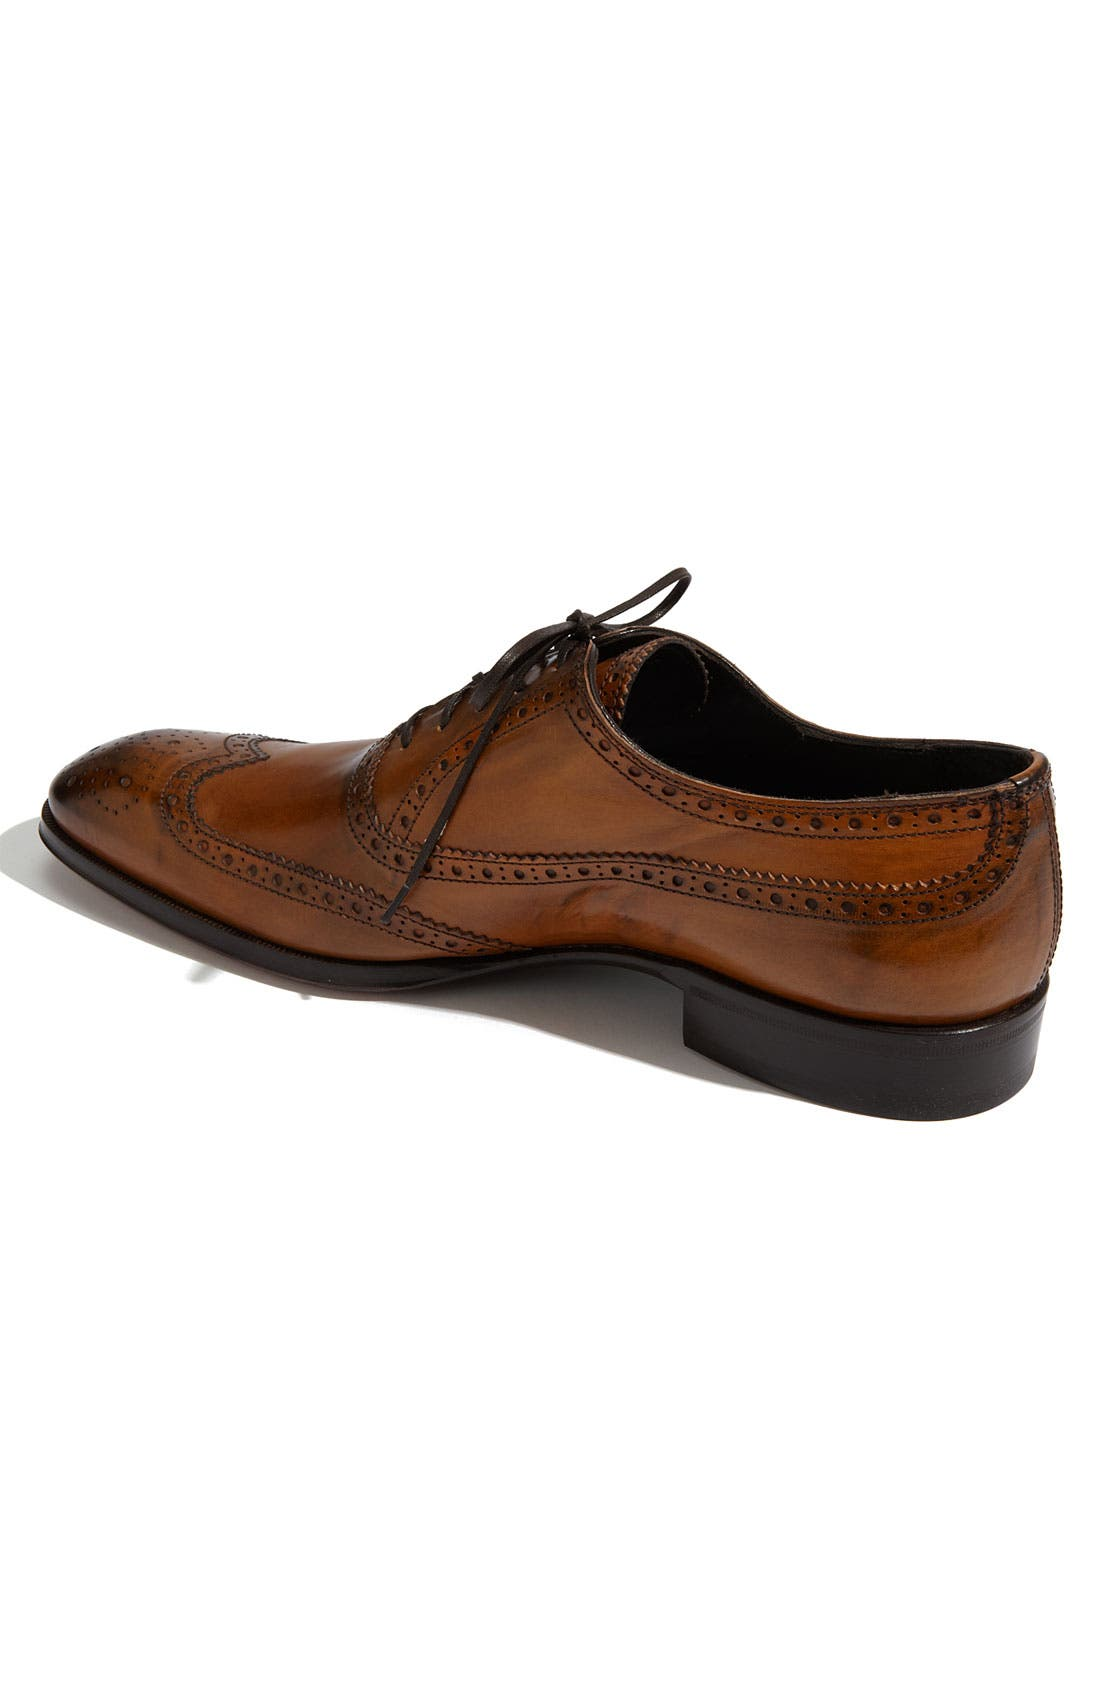 Alternate Image 2  - To Boot New York 'Windsor' Wingtip Oxford (Men)